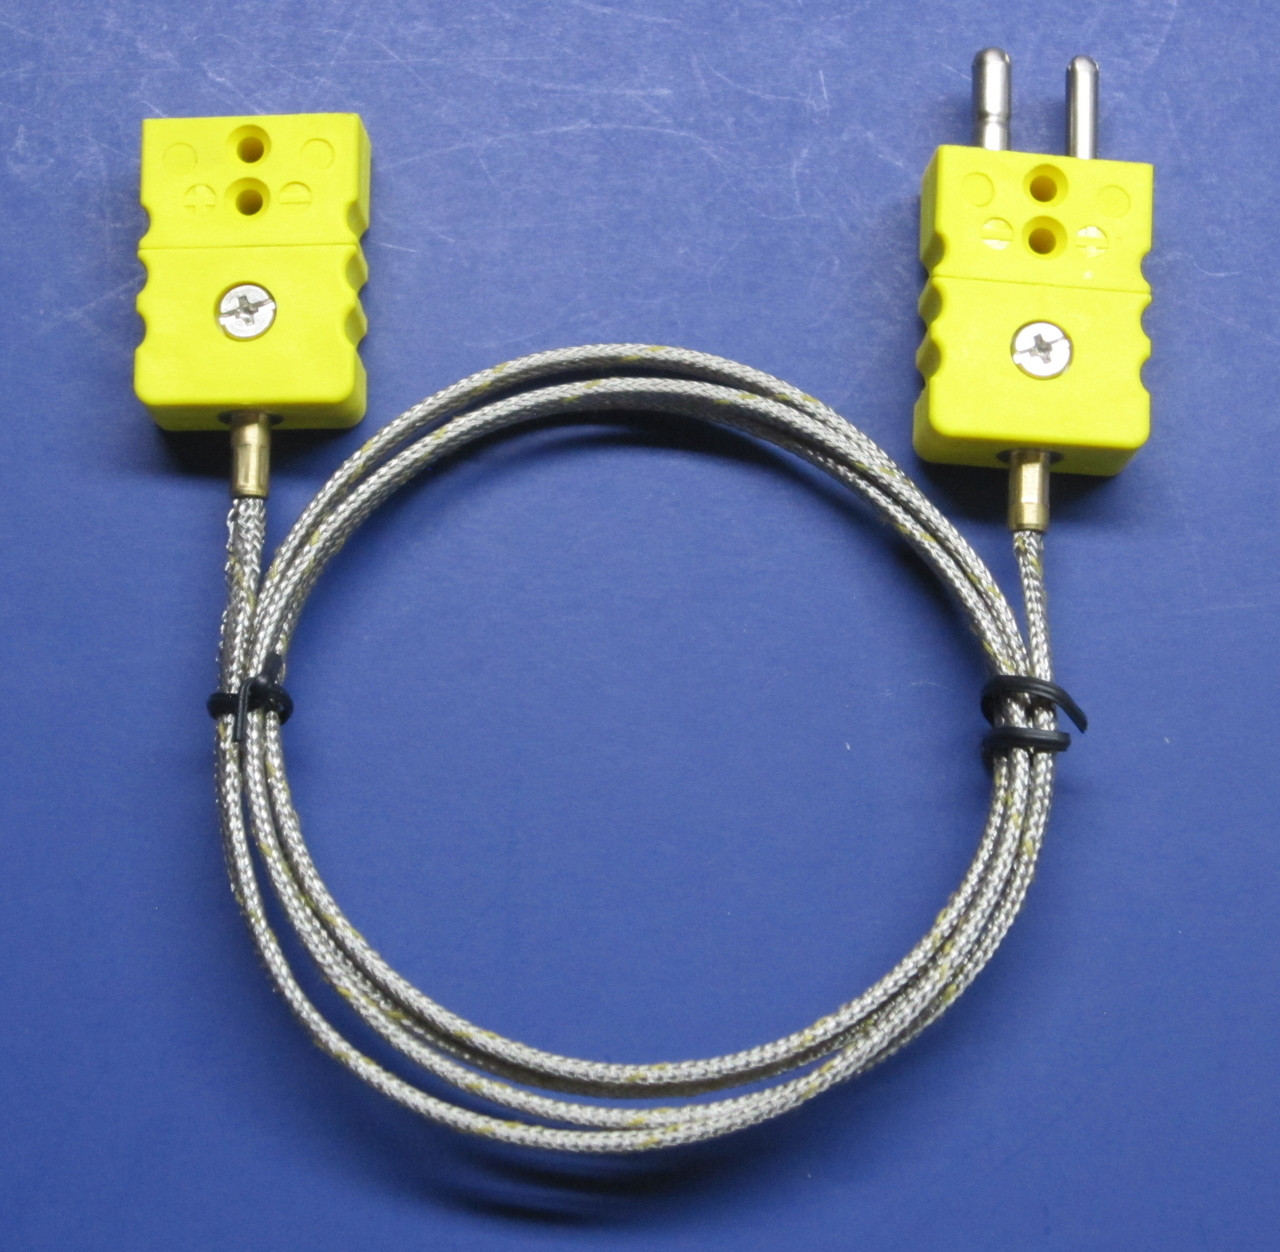 K Type Thermocouple Extension Wire With Subminiature Miniature Mini Wiring Industrial Professional Cable Standard Connectors Protected